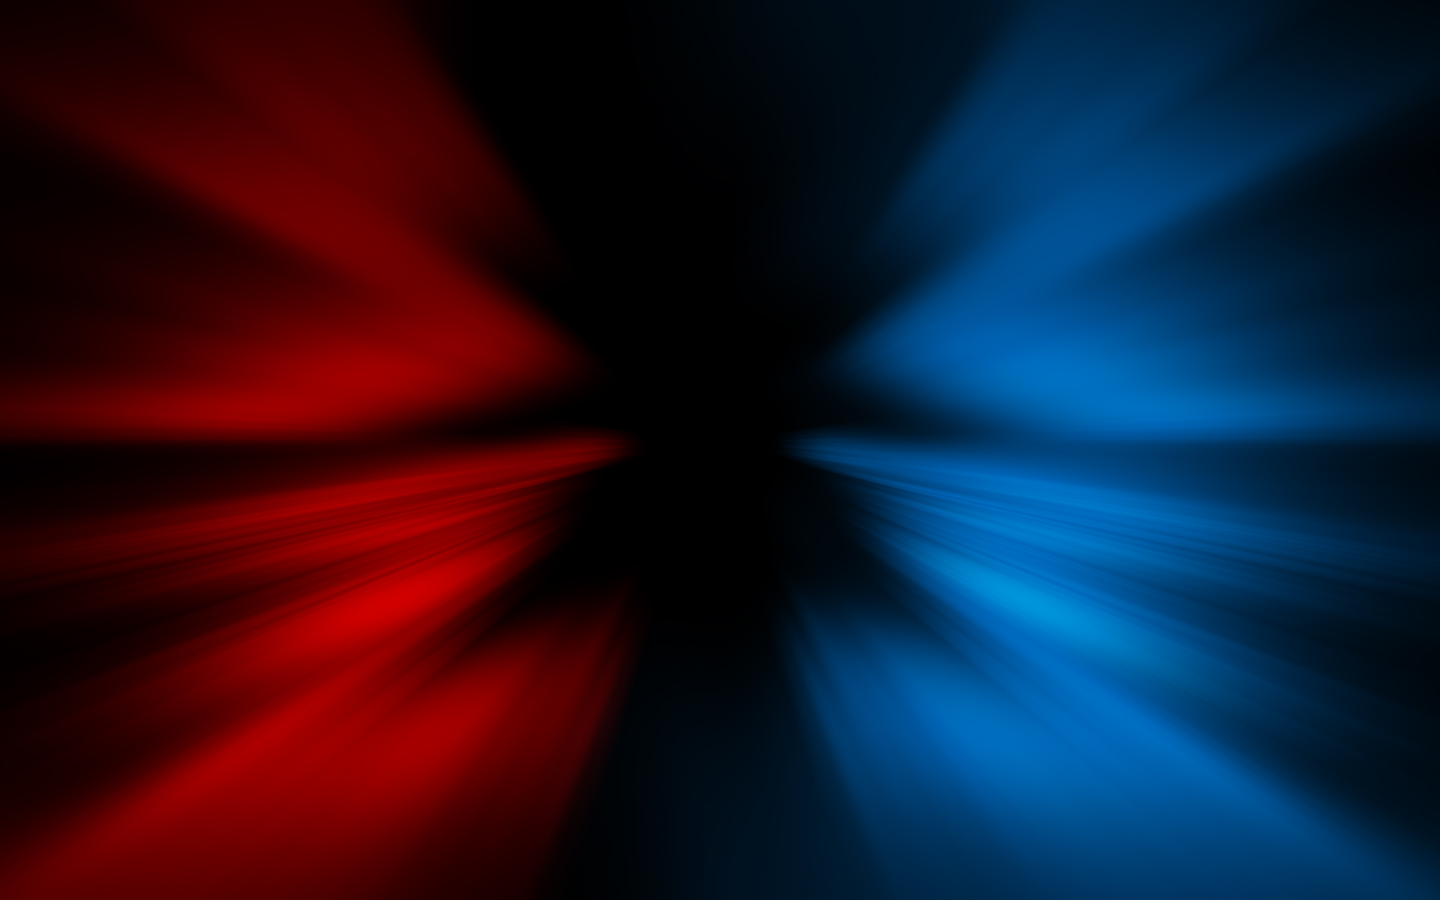 red white and blue backgrounds wallpapersafari